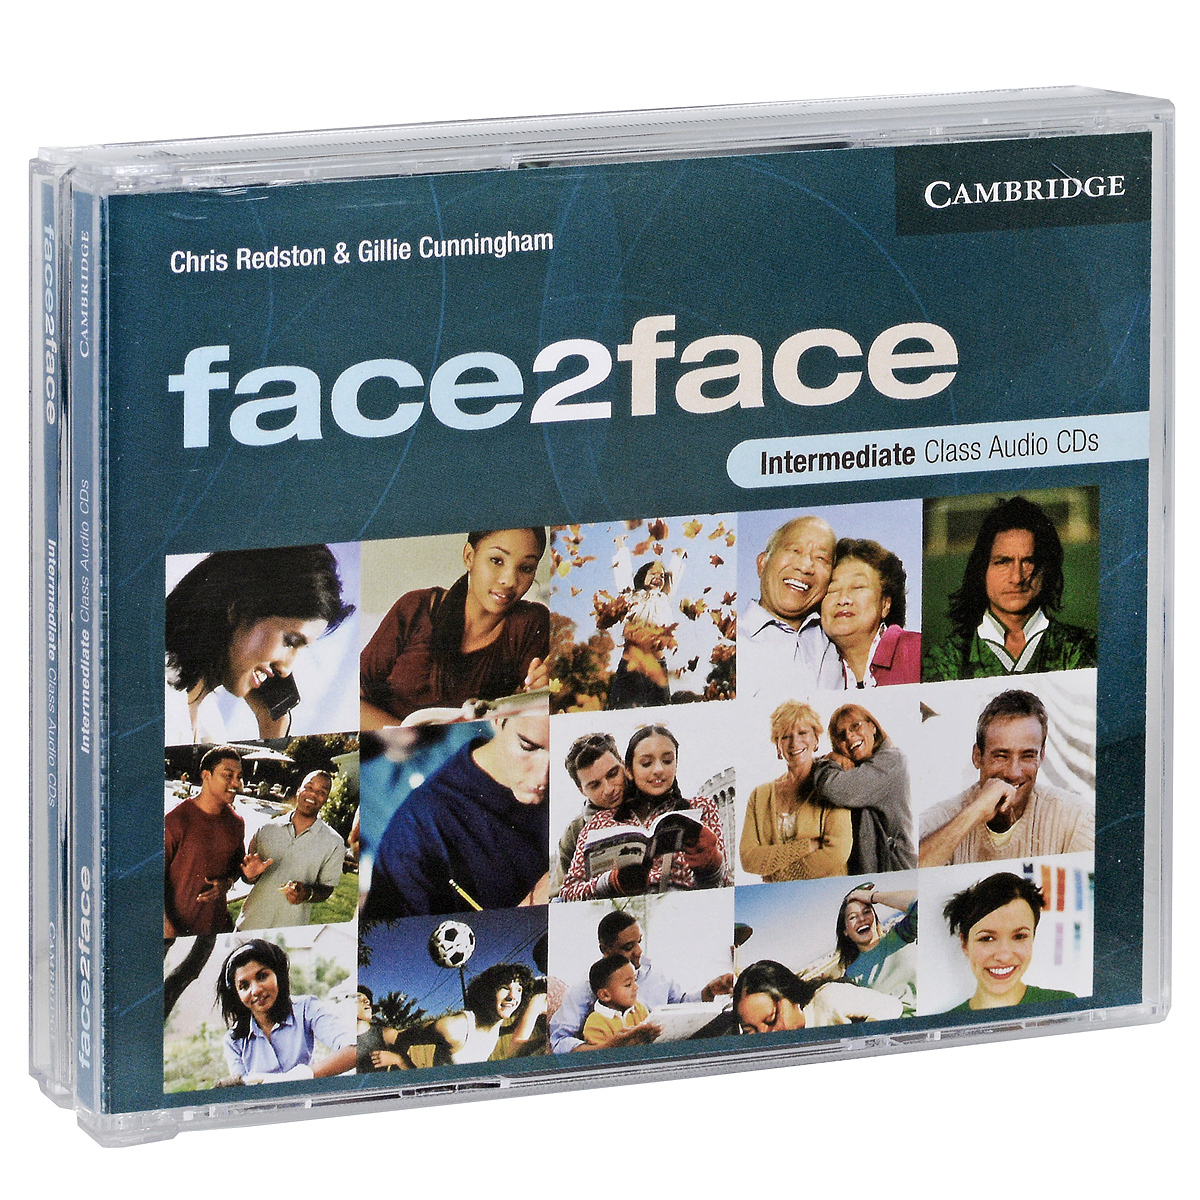 Face2face: Intermediate (аудиокурс на 3 CD) redston c face2face intermediate students book with cd rom audio cd